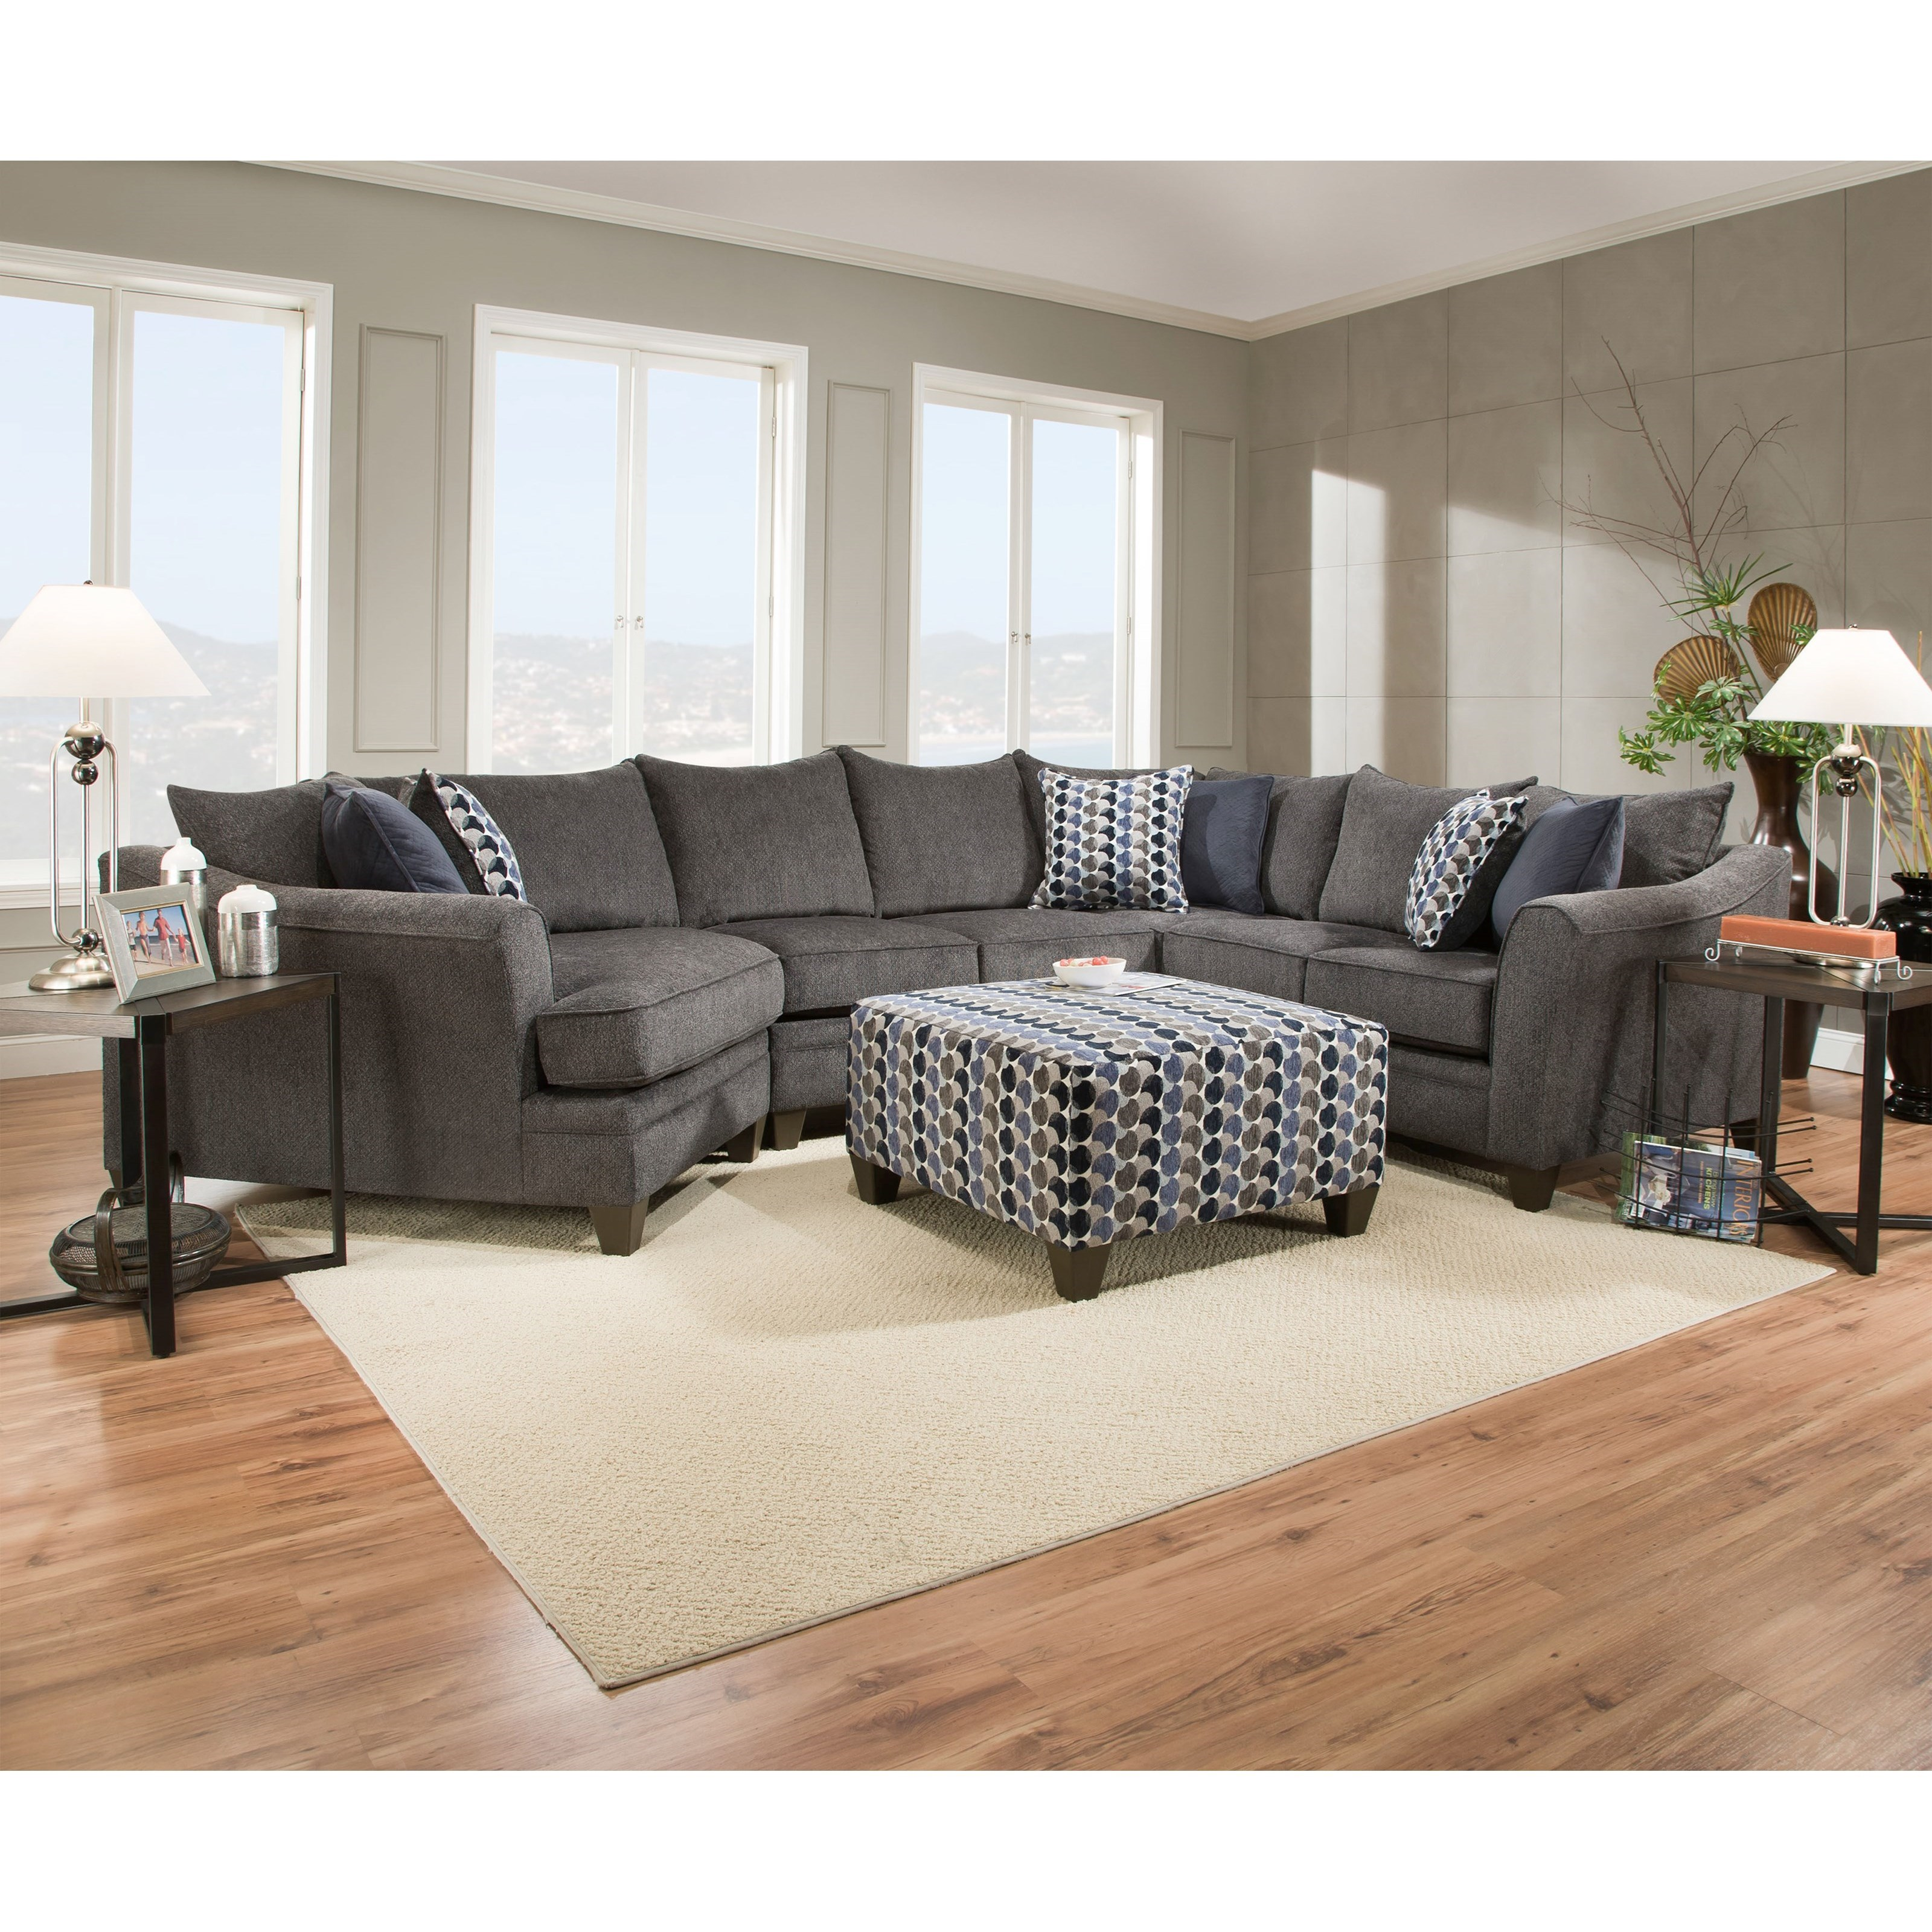 6485 Transitional Sectional Sofa by United Furniture Industries at Dream Home Interiors